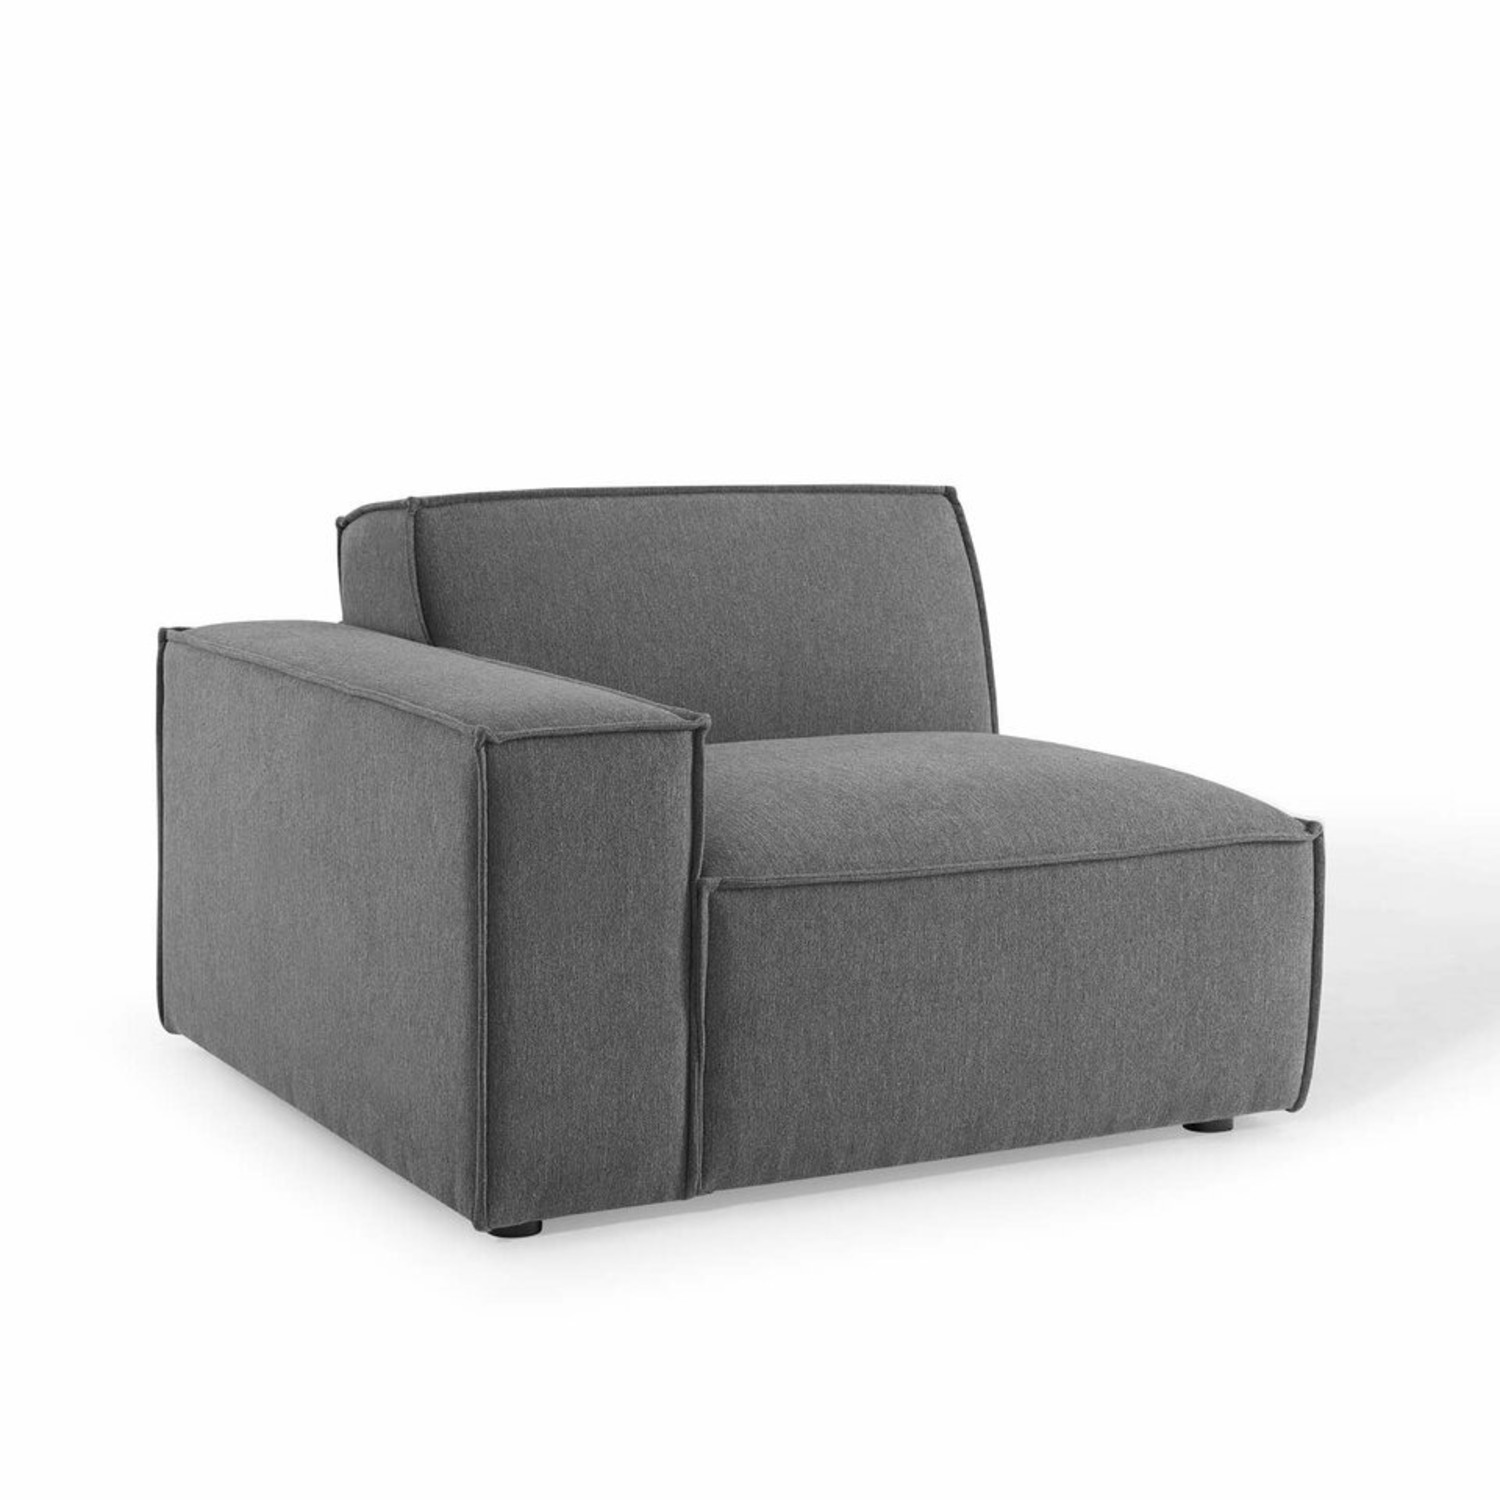 7-Piece Sectional Sofa In Charcoal Upholstery - image-4